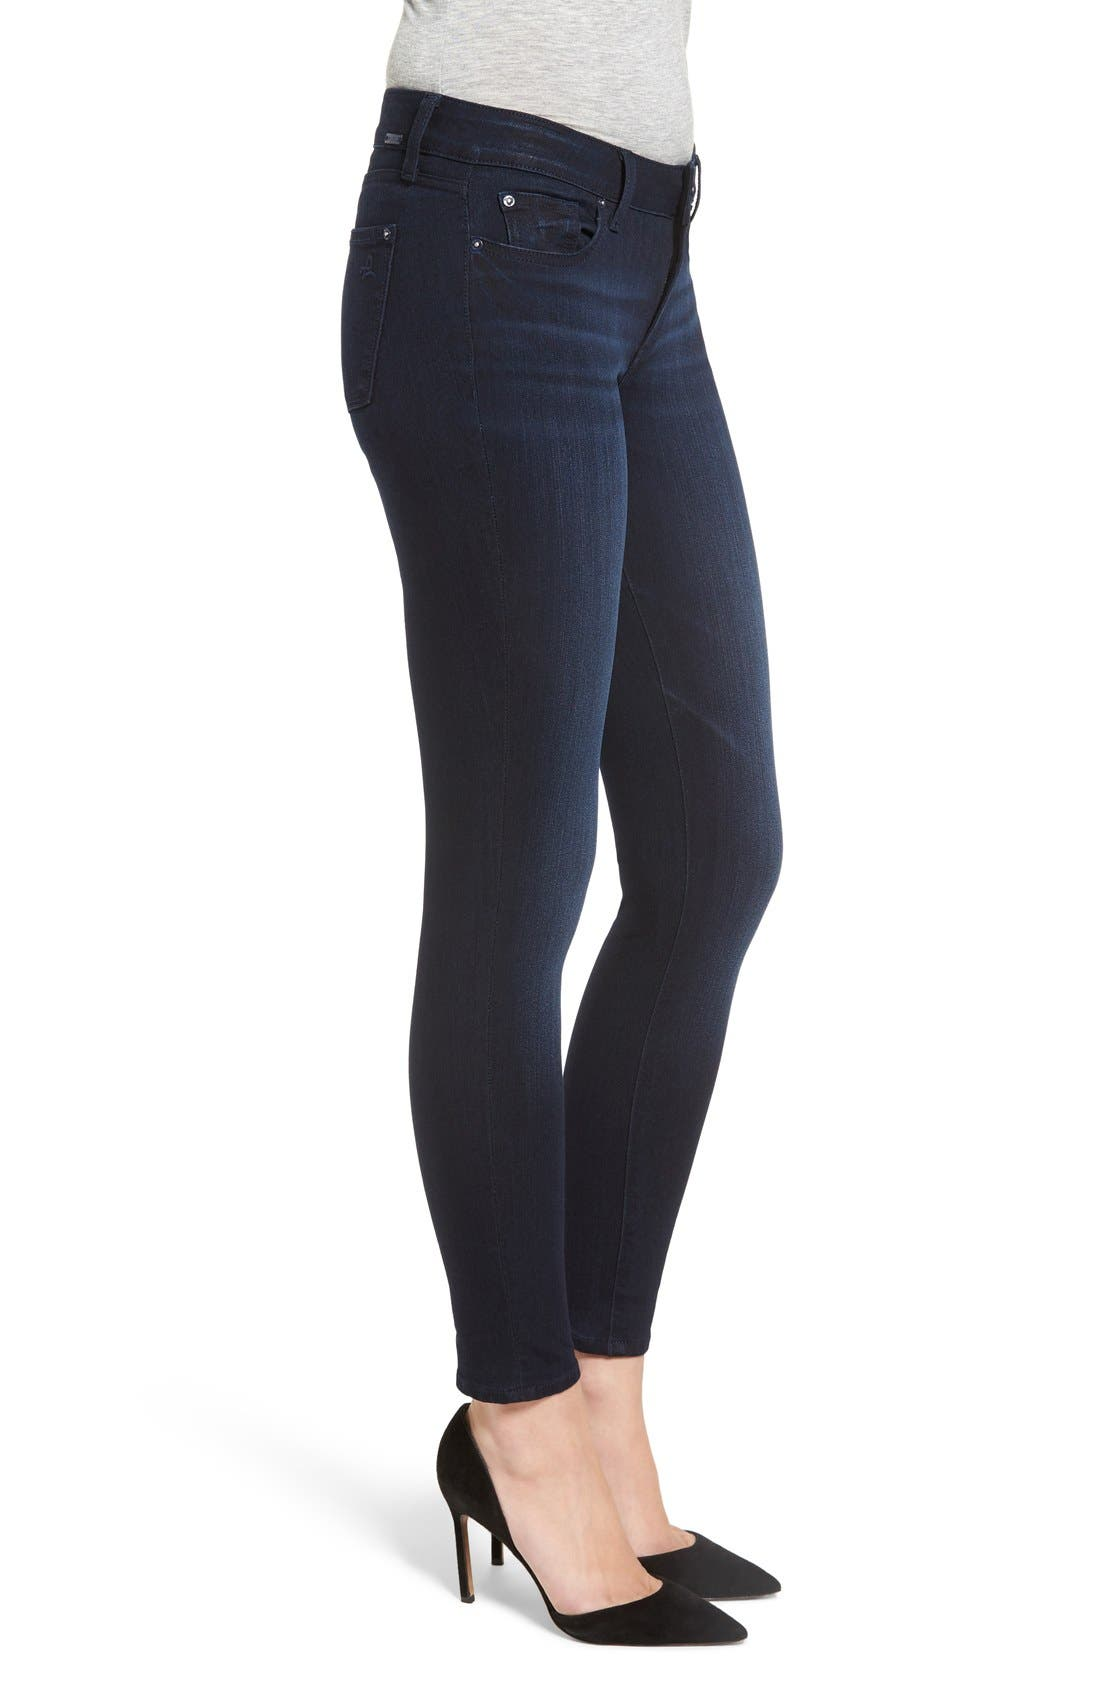 Alternate Image 3  - DL1961 'Emma' Power Legging Jeans (Token)